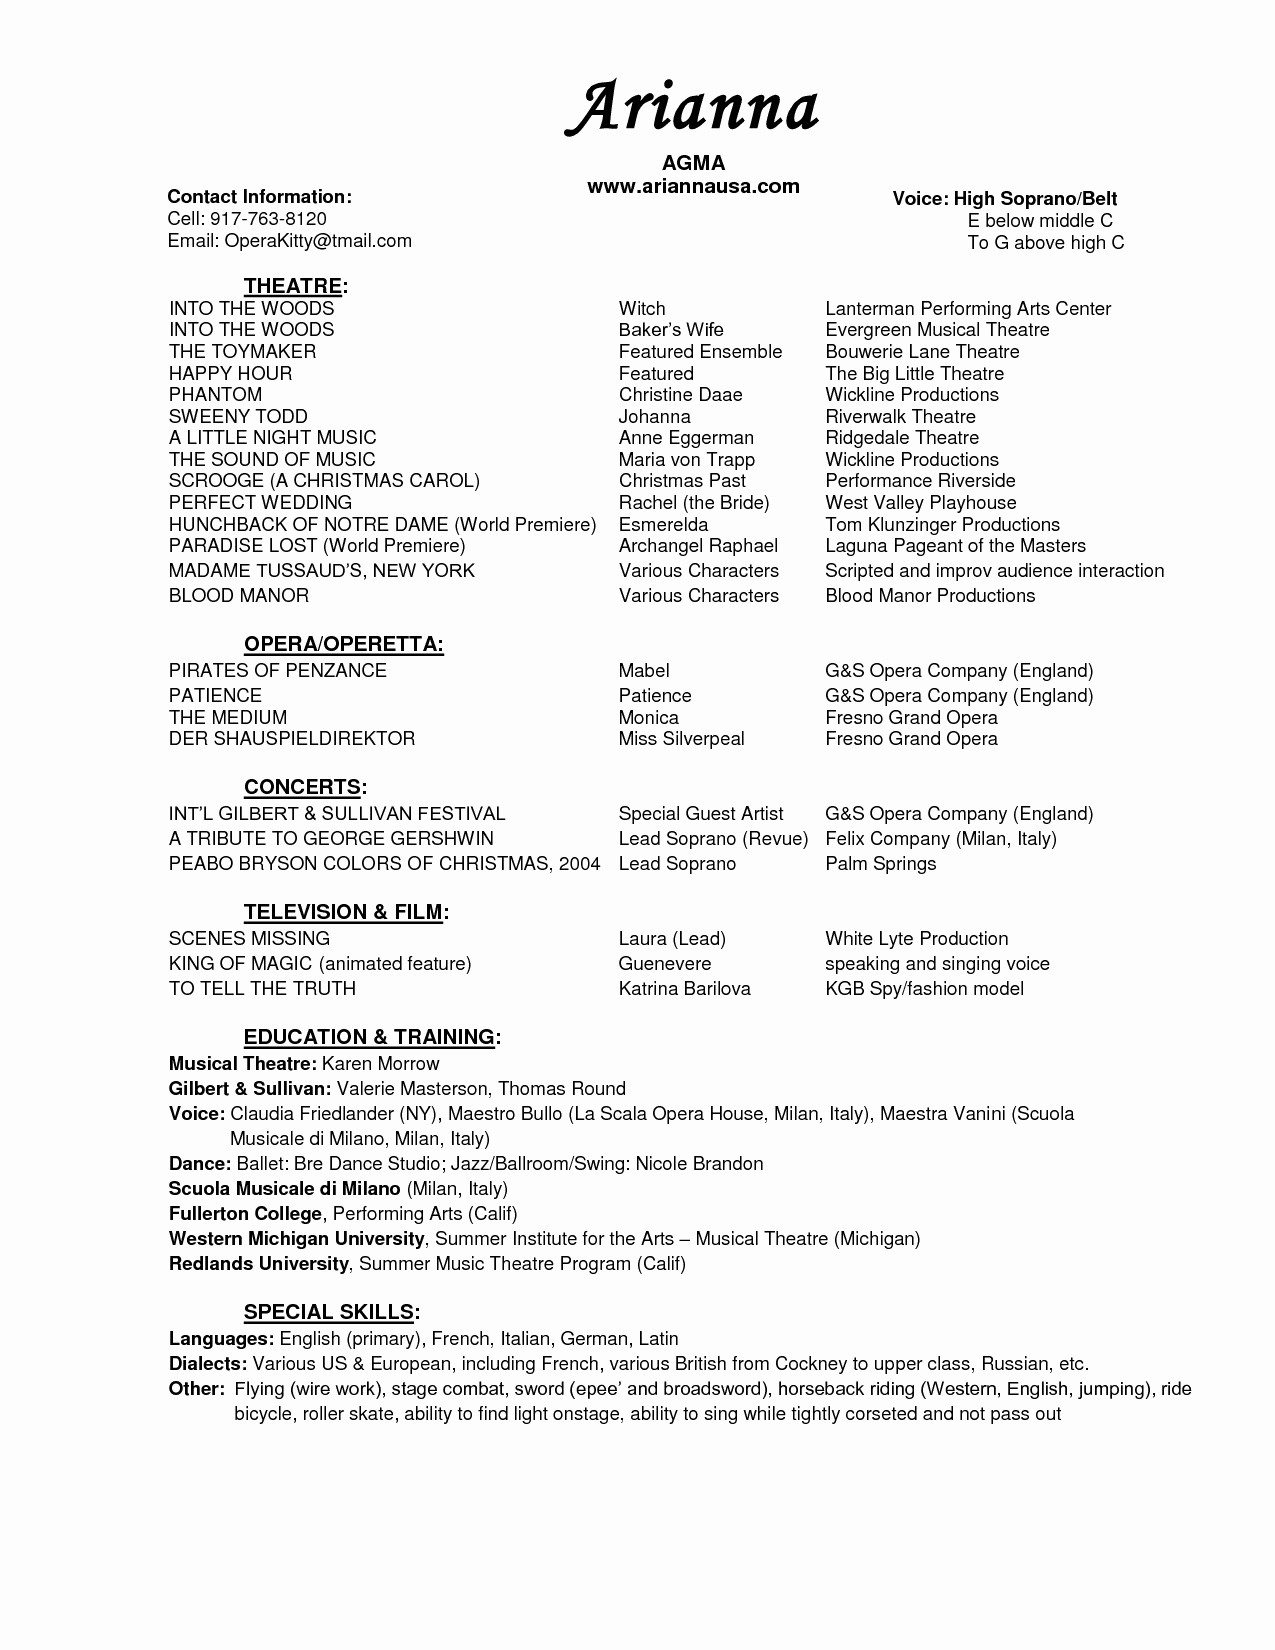 Performing Resume Template - Musicians Resume Template Save Musical theatre Resume Template